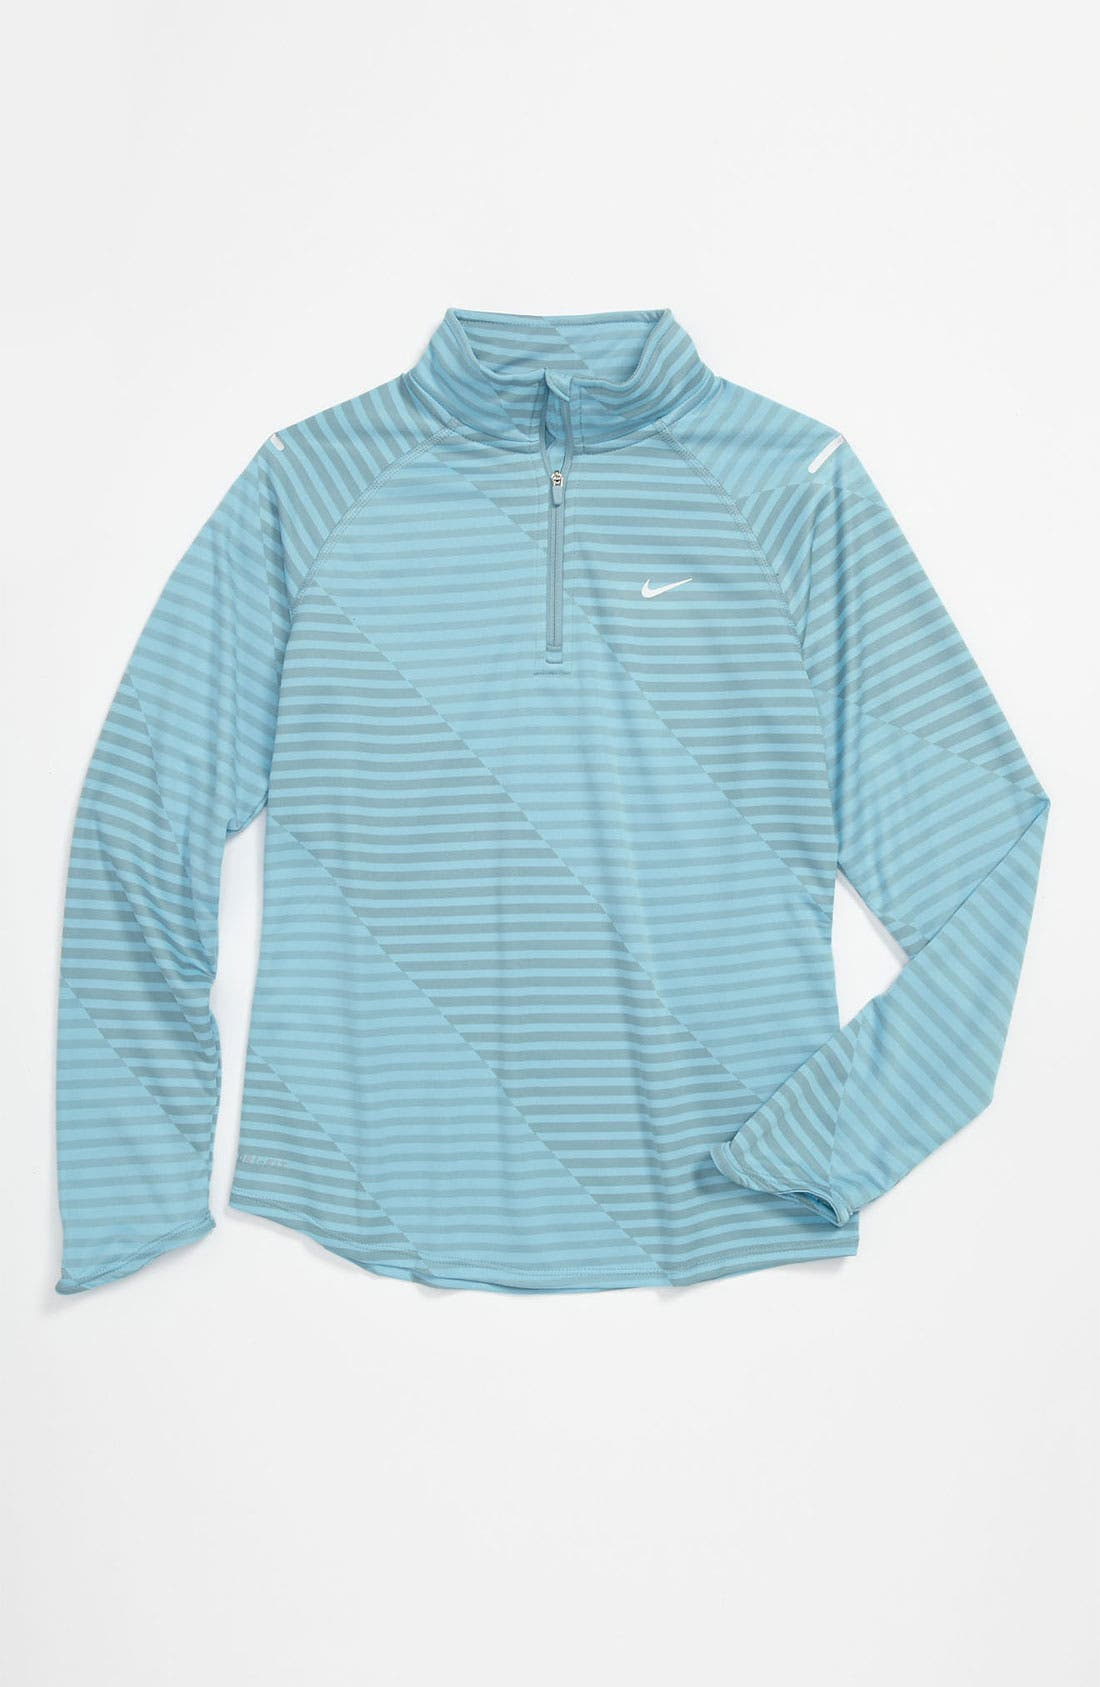 Alternate Image 1 Selected - Nike 'Jacquard Element' Jacket (Big Girls)